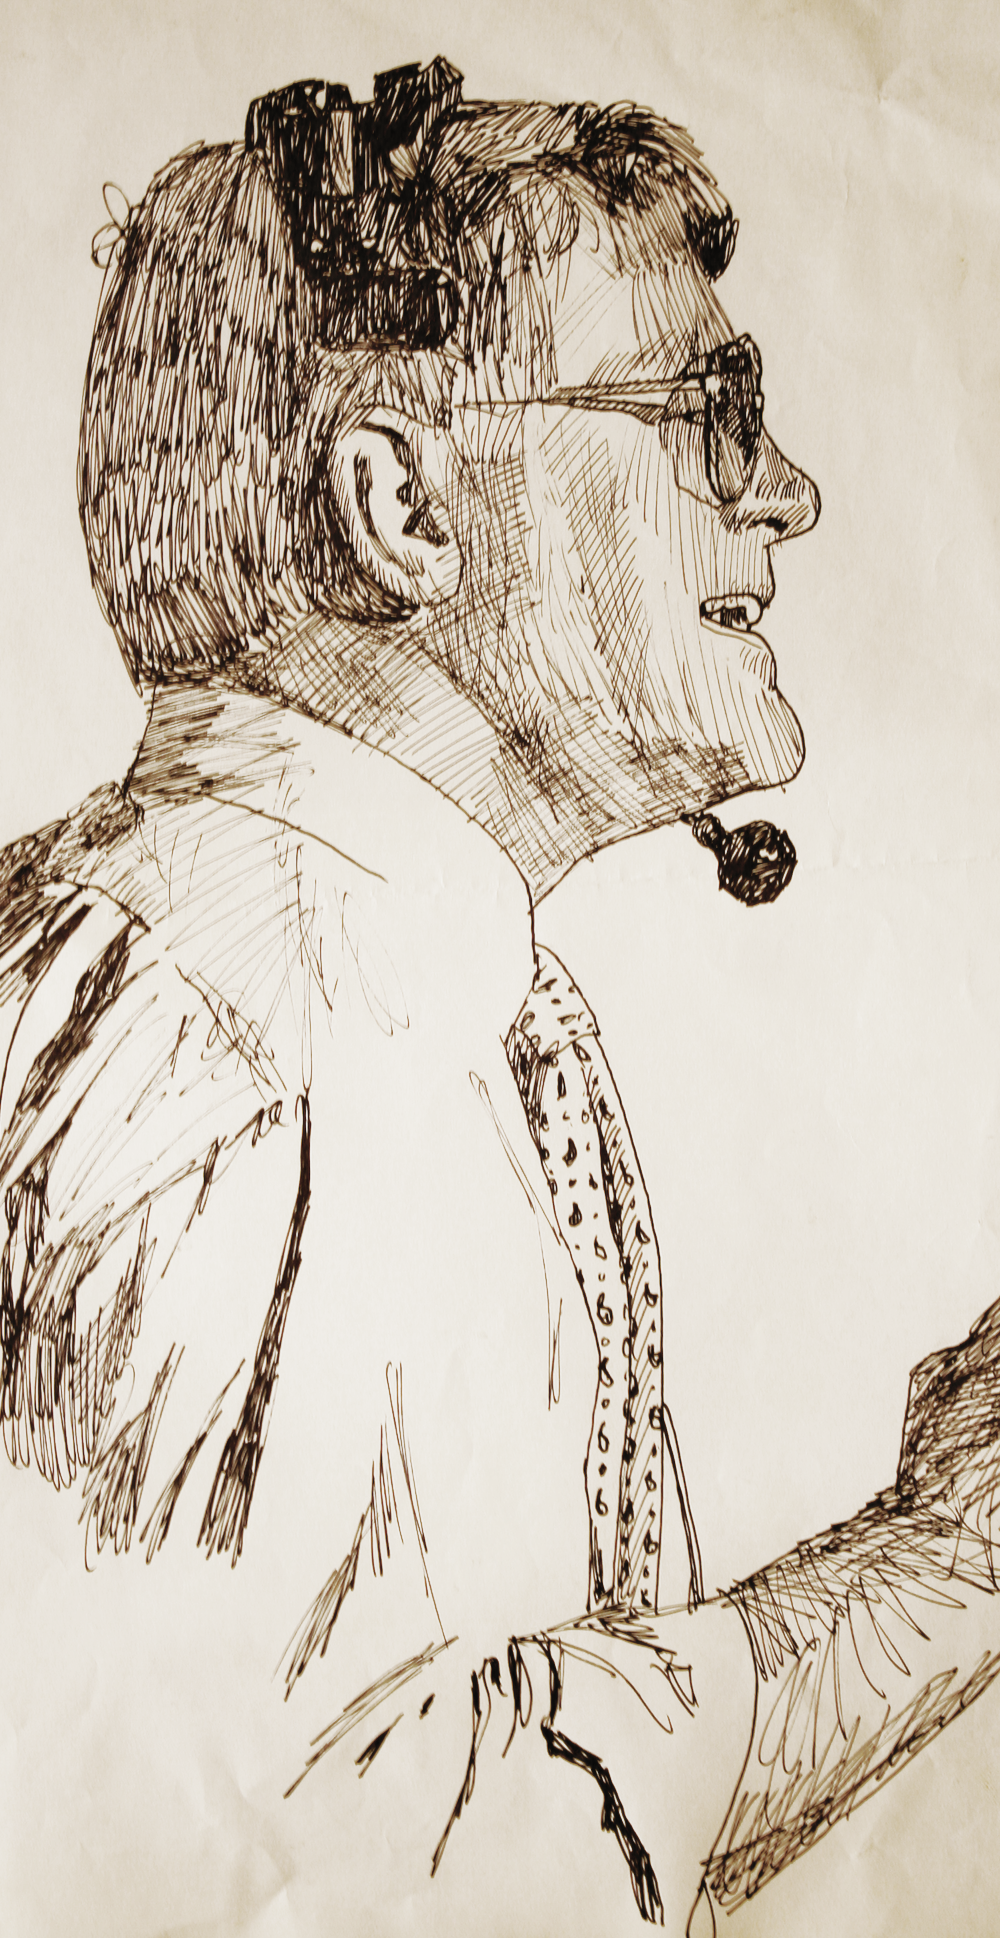 Dan Reeves - Denver broncos Head Coach-original drawing using ink by cork freelance artist, web site designer and developer